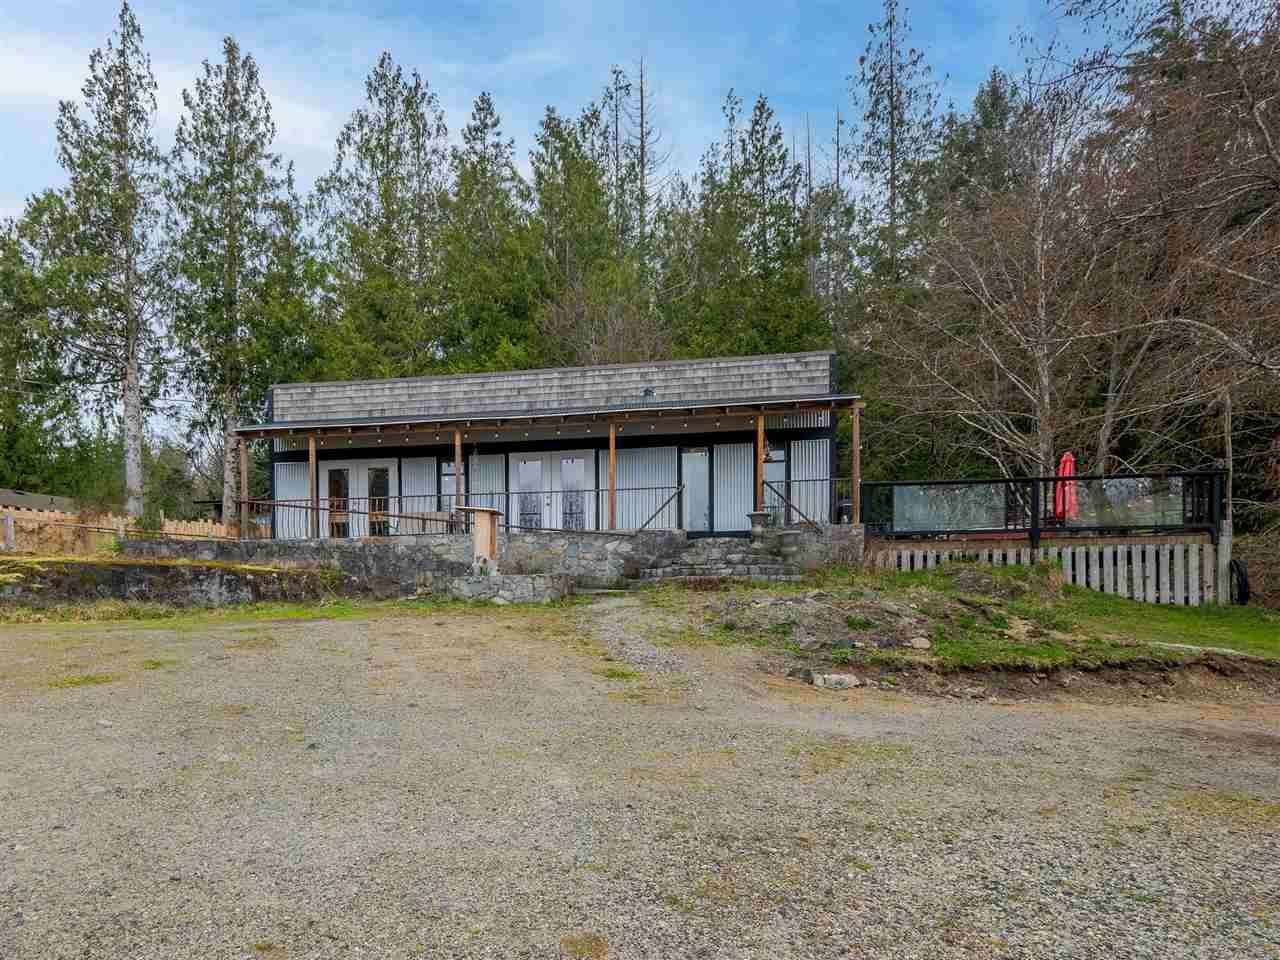 Main Photo: 4591 4581 FRANCIS PENINSULA Road in Pender Harbour: Pender Harbour Egmont Land Commercial for sale (Sunshine Coast)  : MLS®# C8037356